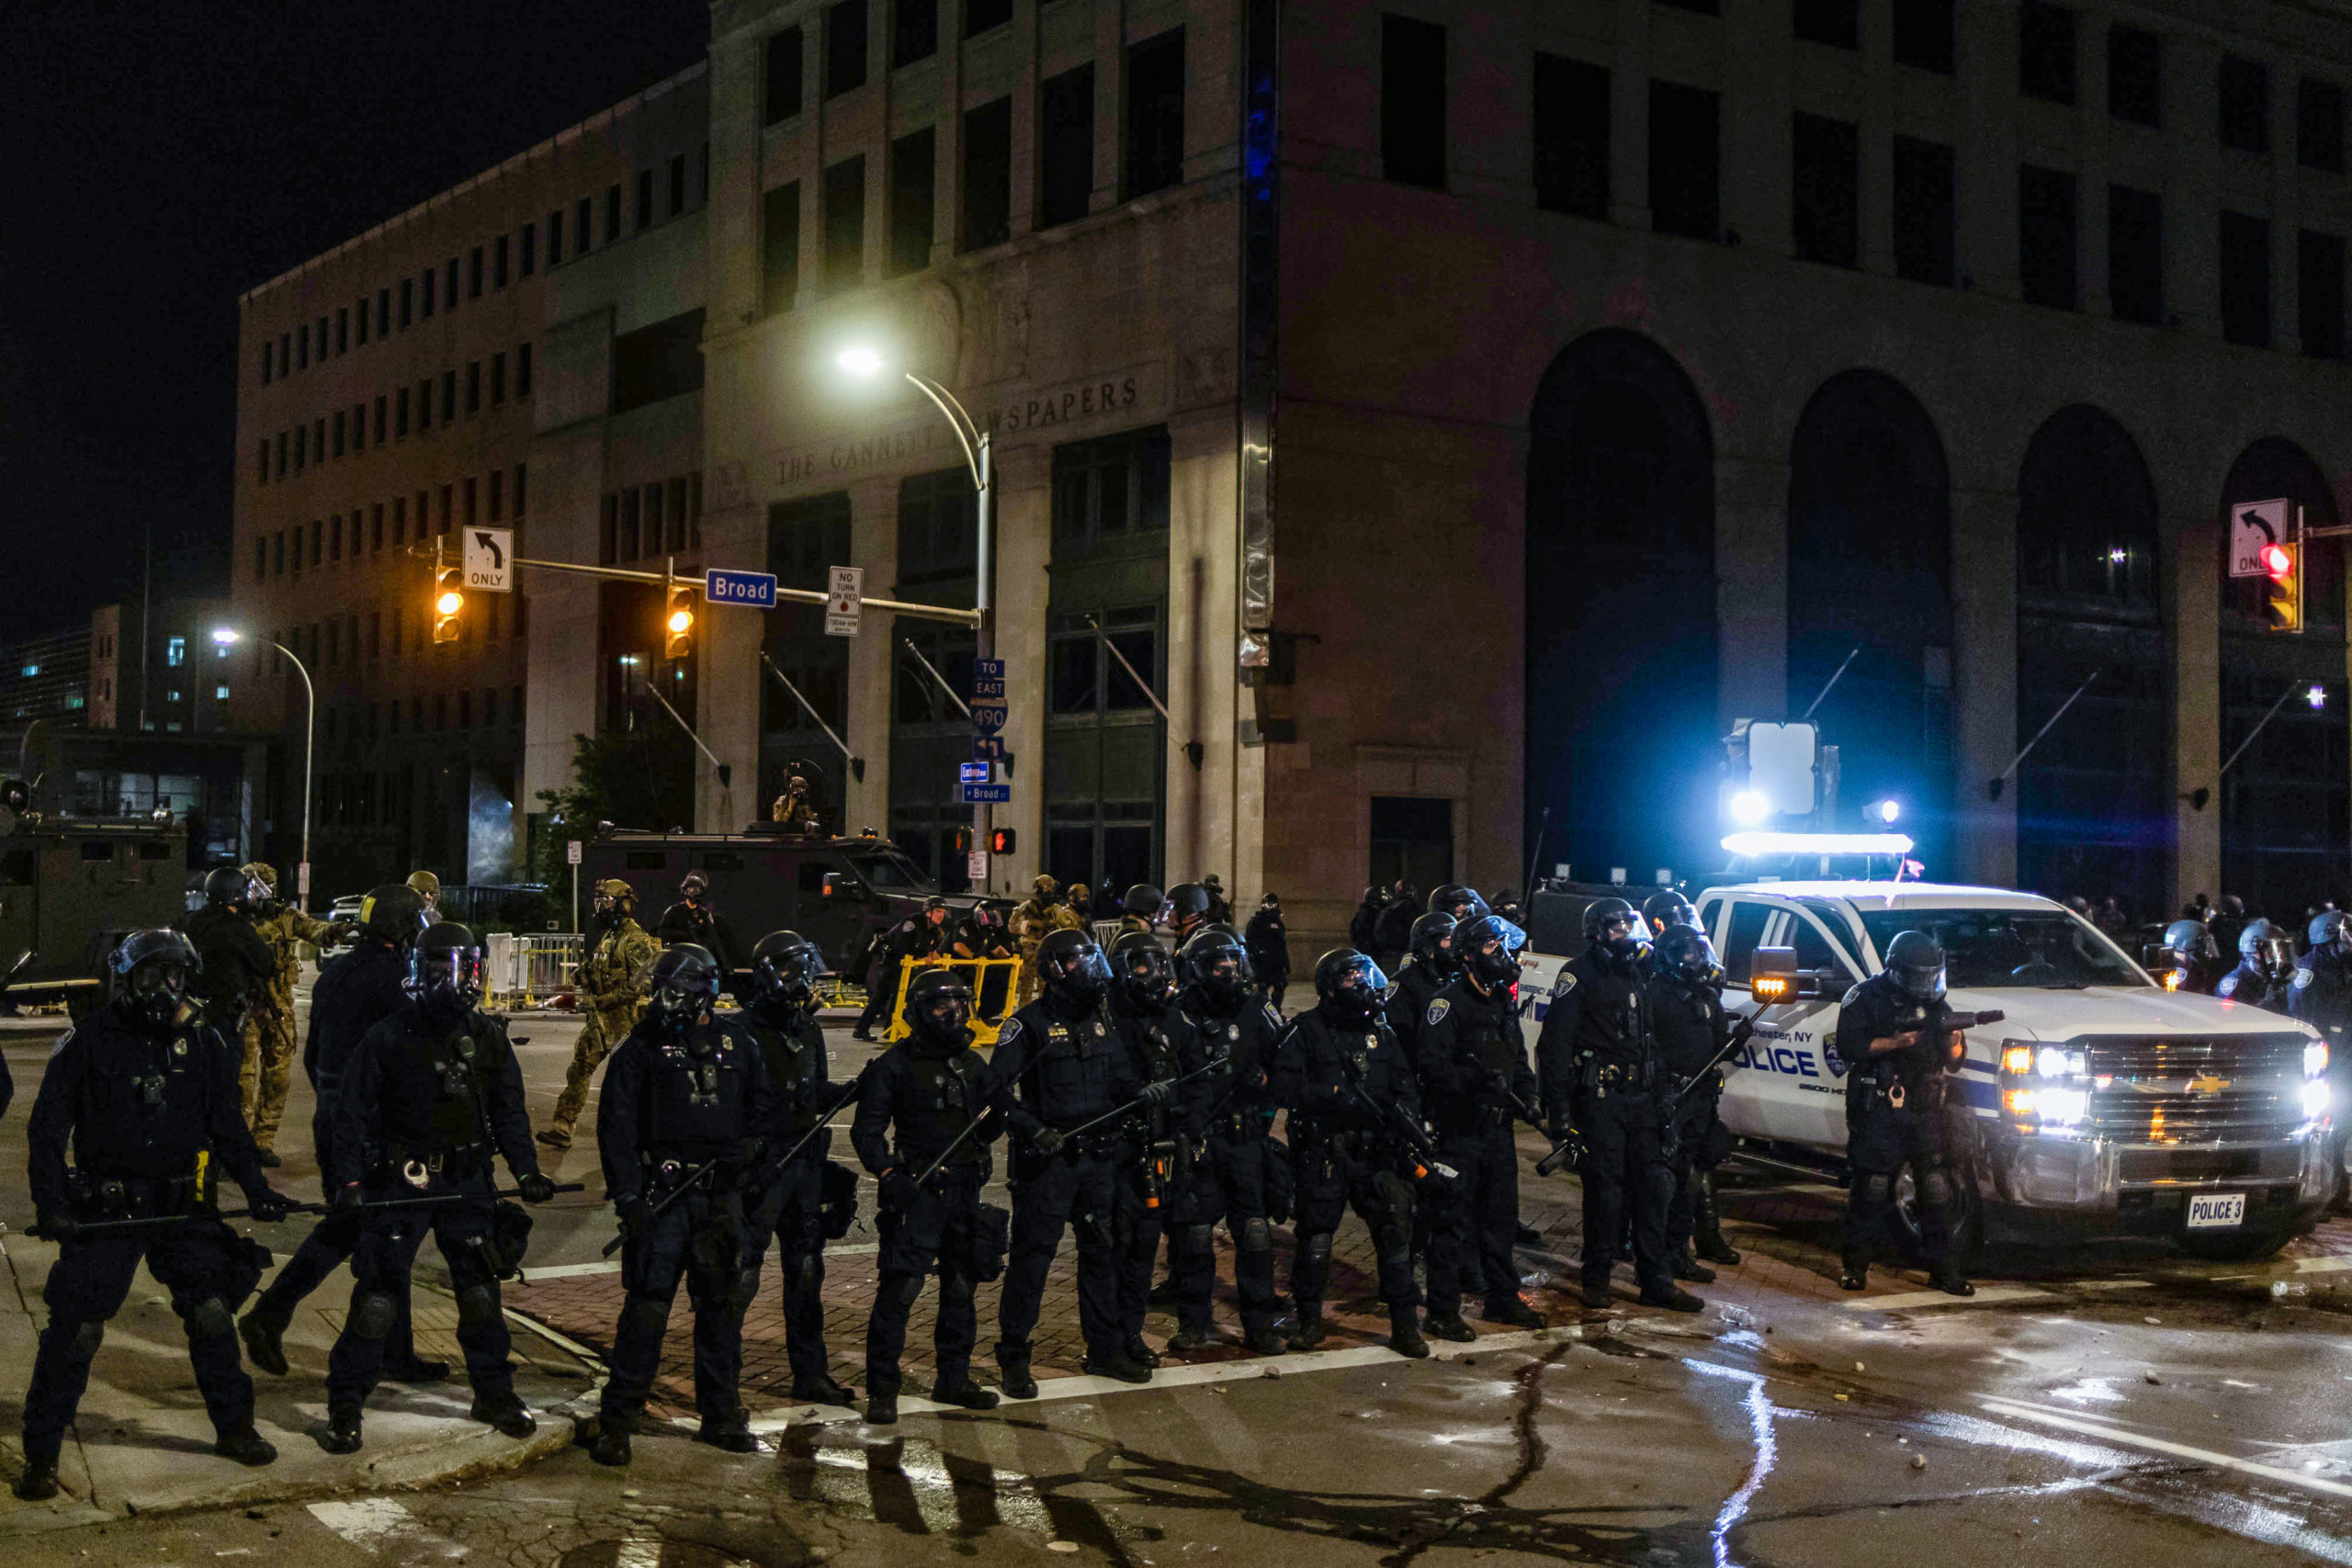 Rochester Police in riot gear stand in Rochester, New York, on September 5, 2020, on the fourth night of protest following the release of video showing the death of Daniel Prude. - Prude, a 41-year-old African American who had mental health issues, died of asphyxiation after police arrested him on March 23, 2020, in Rochester. (MARANIE R. STAAB/AFP via Getty Images)